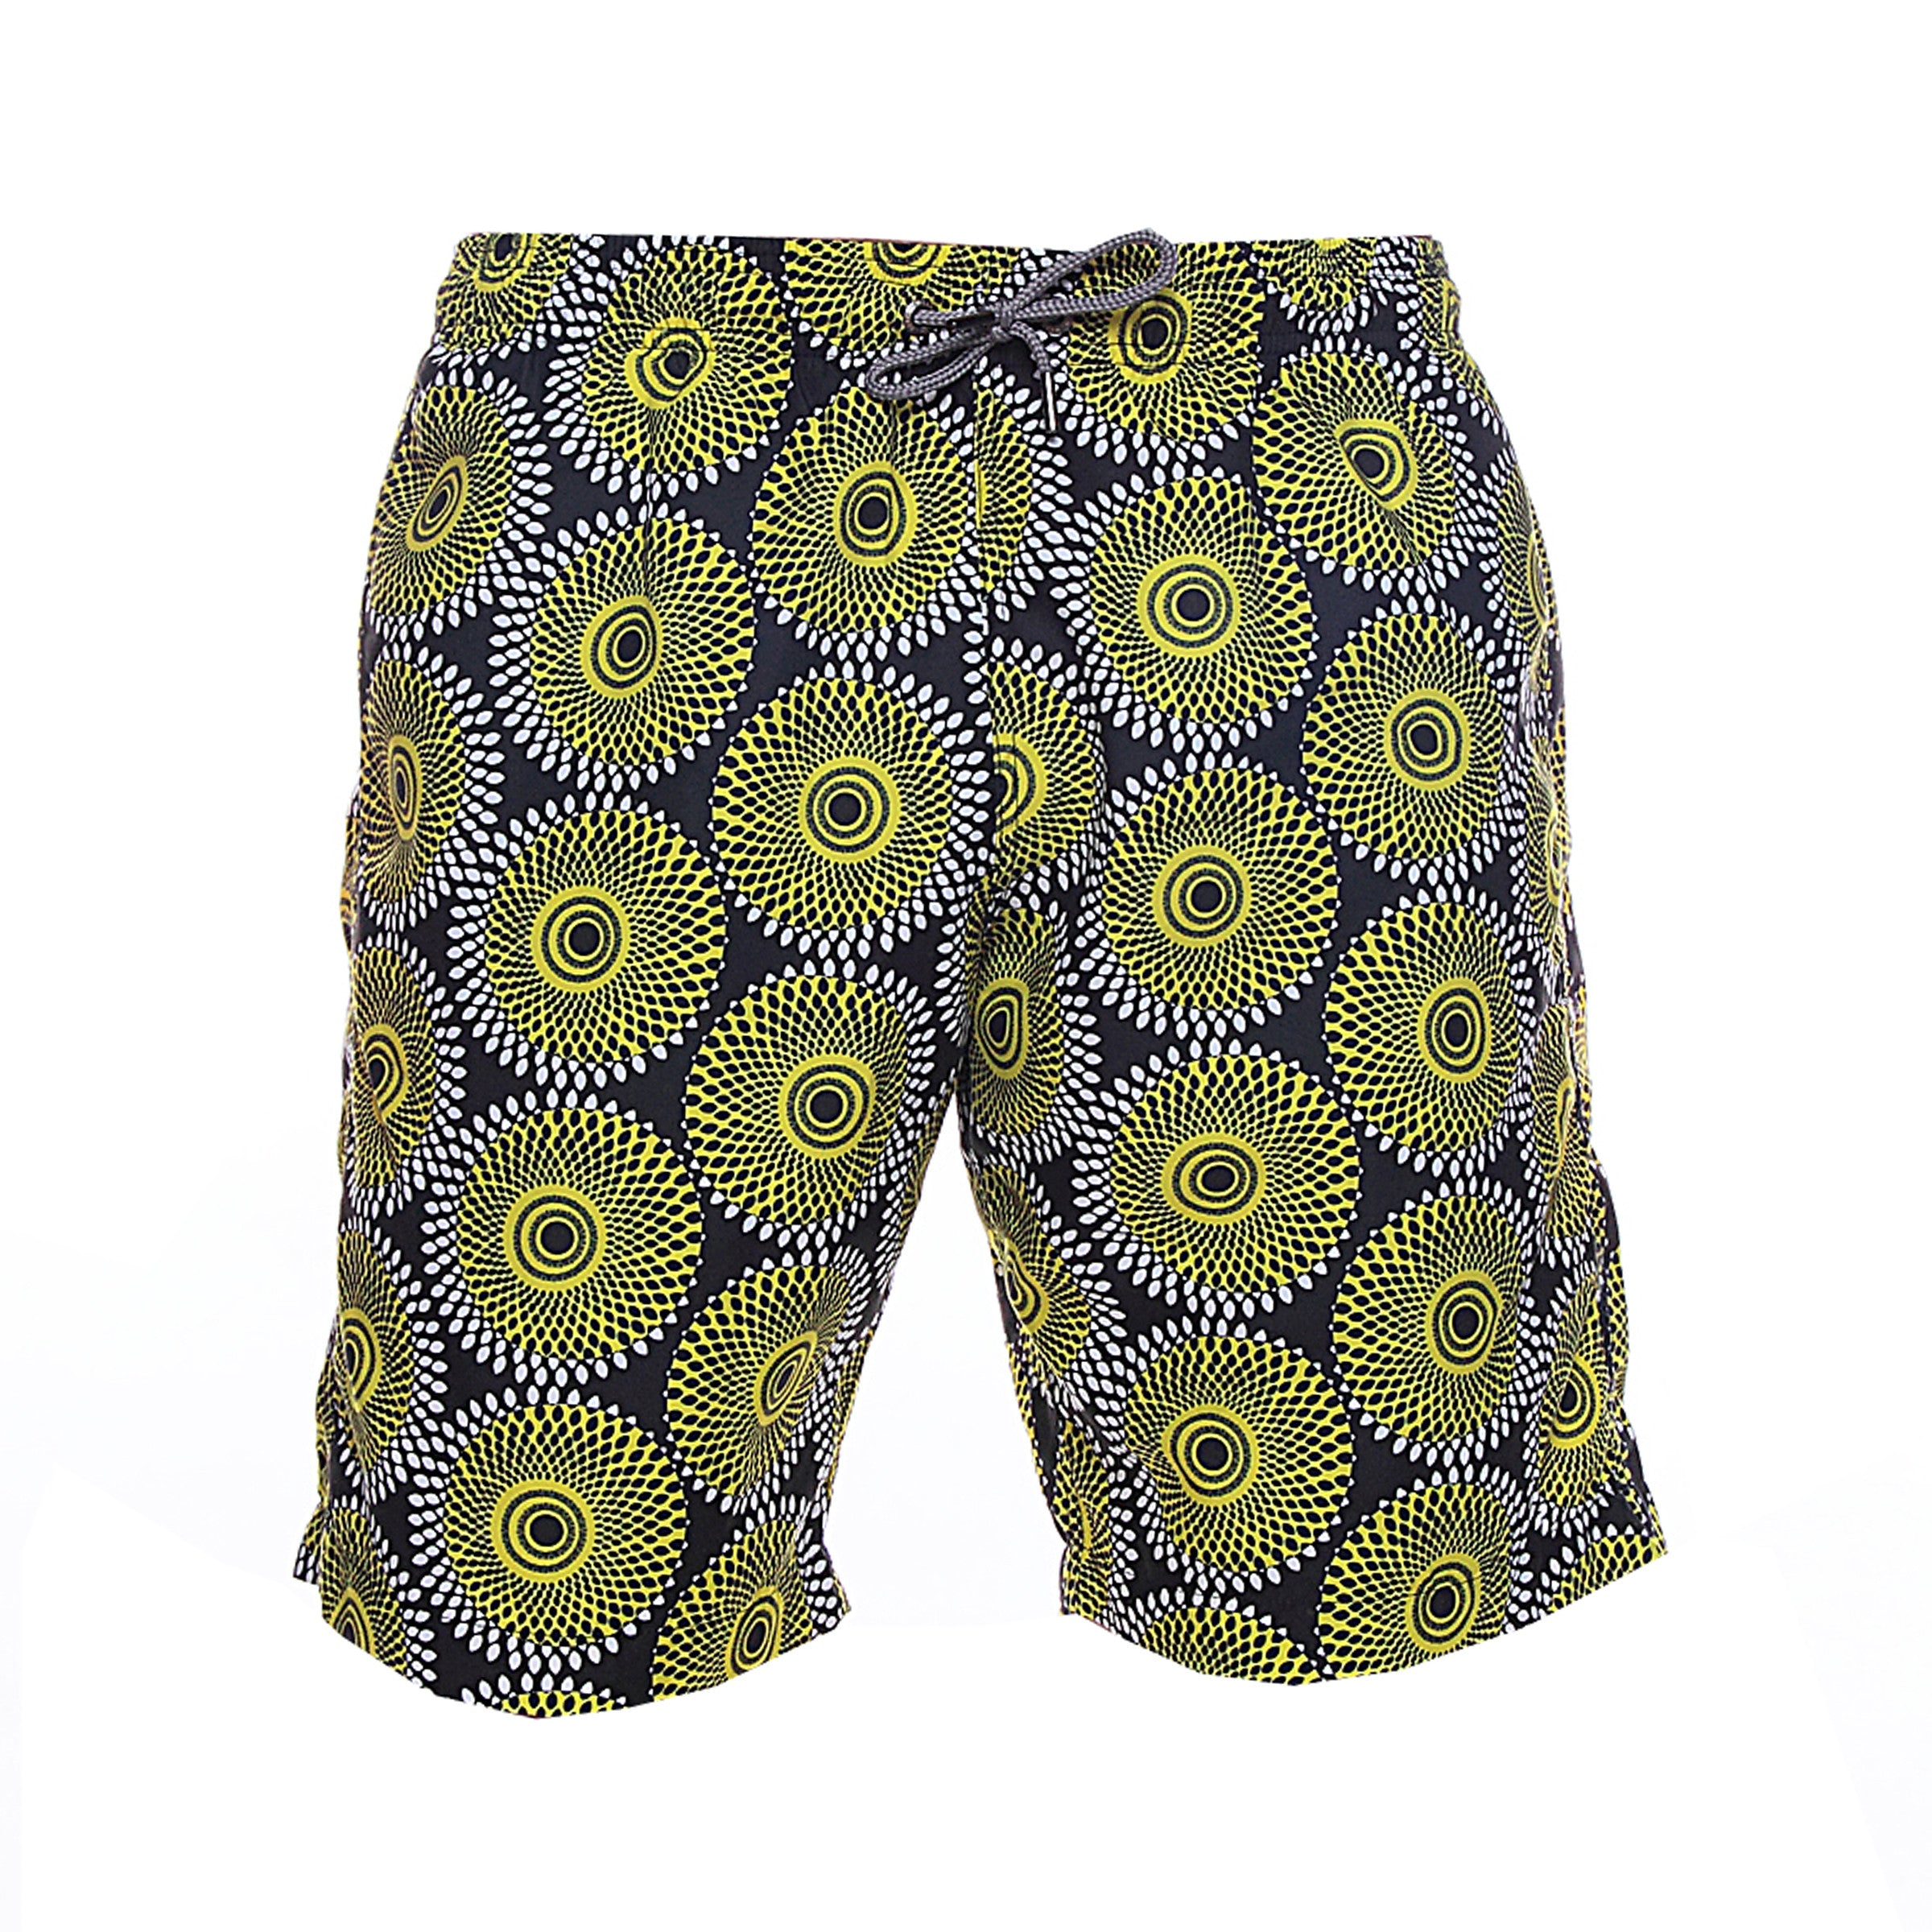 Ali Ile Men's Swim Trunk (pre-order) - Inspired Luxe